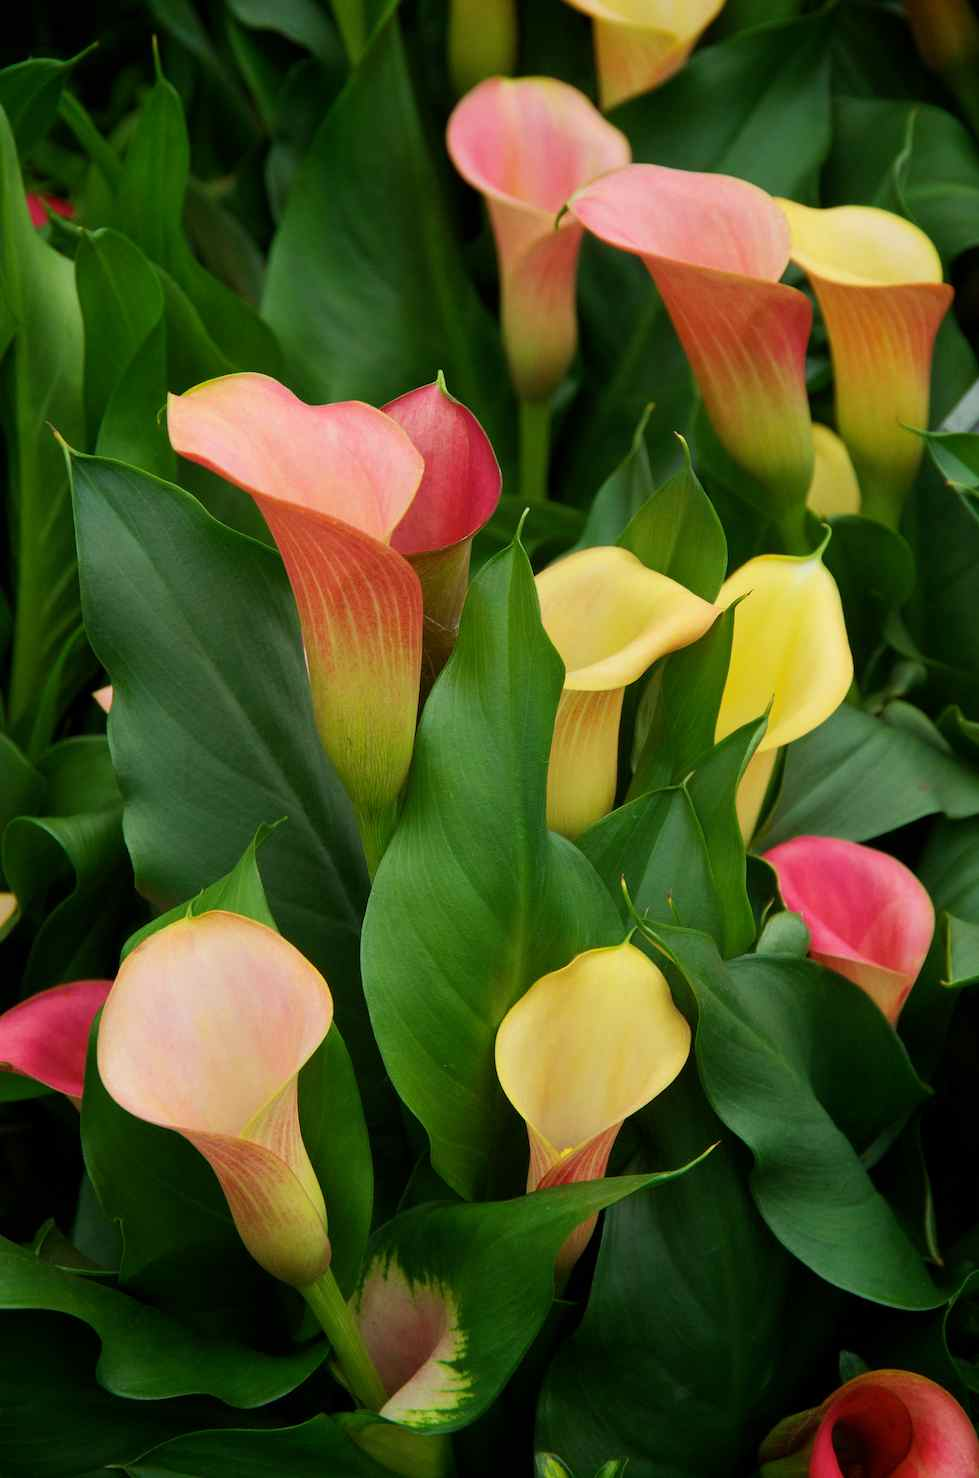 photographer 39 s garden zantedeschia or arum lily. Black Bedroom Furniture Sets. Home Design Ideas